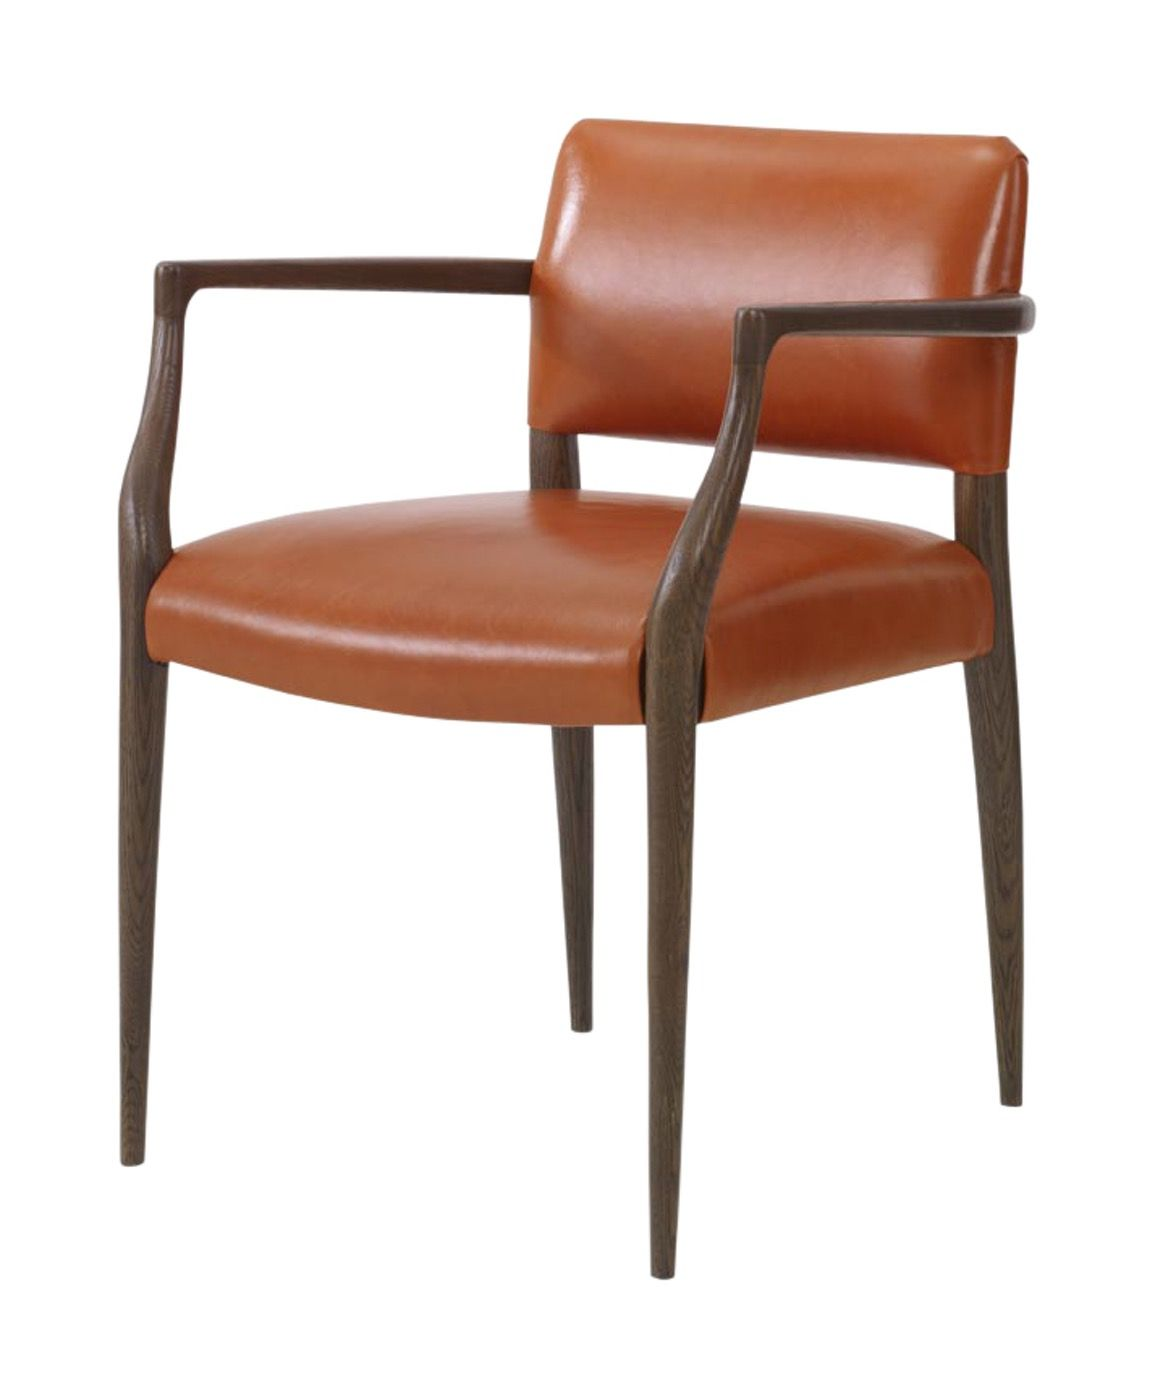 Luccio Arm Chair Contemporary Midcentury Modern Transitional